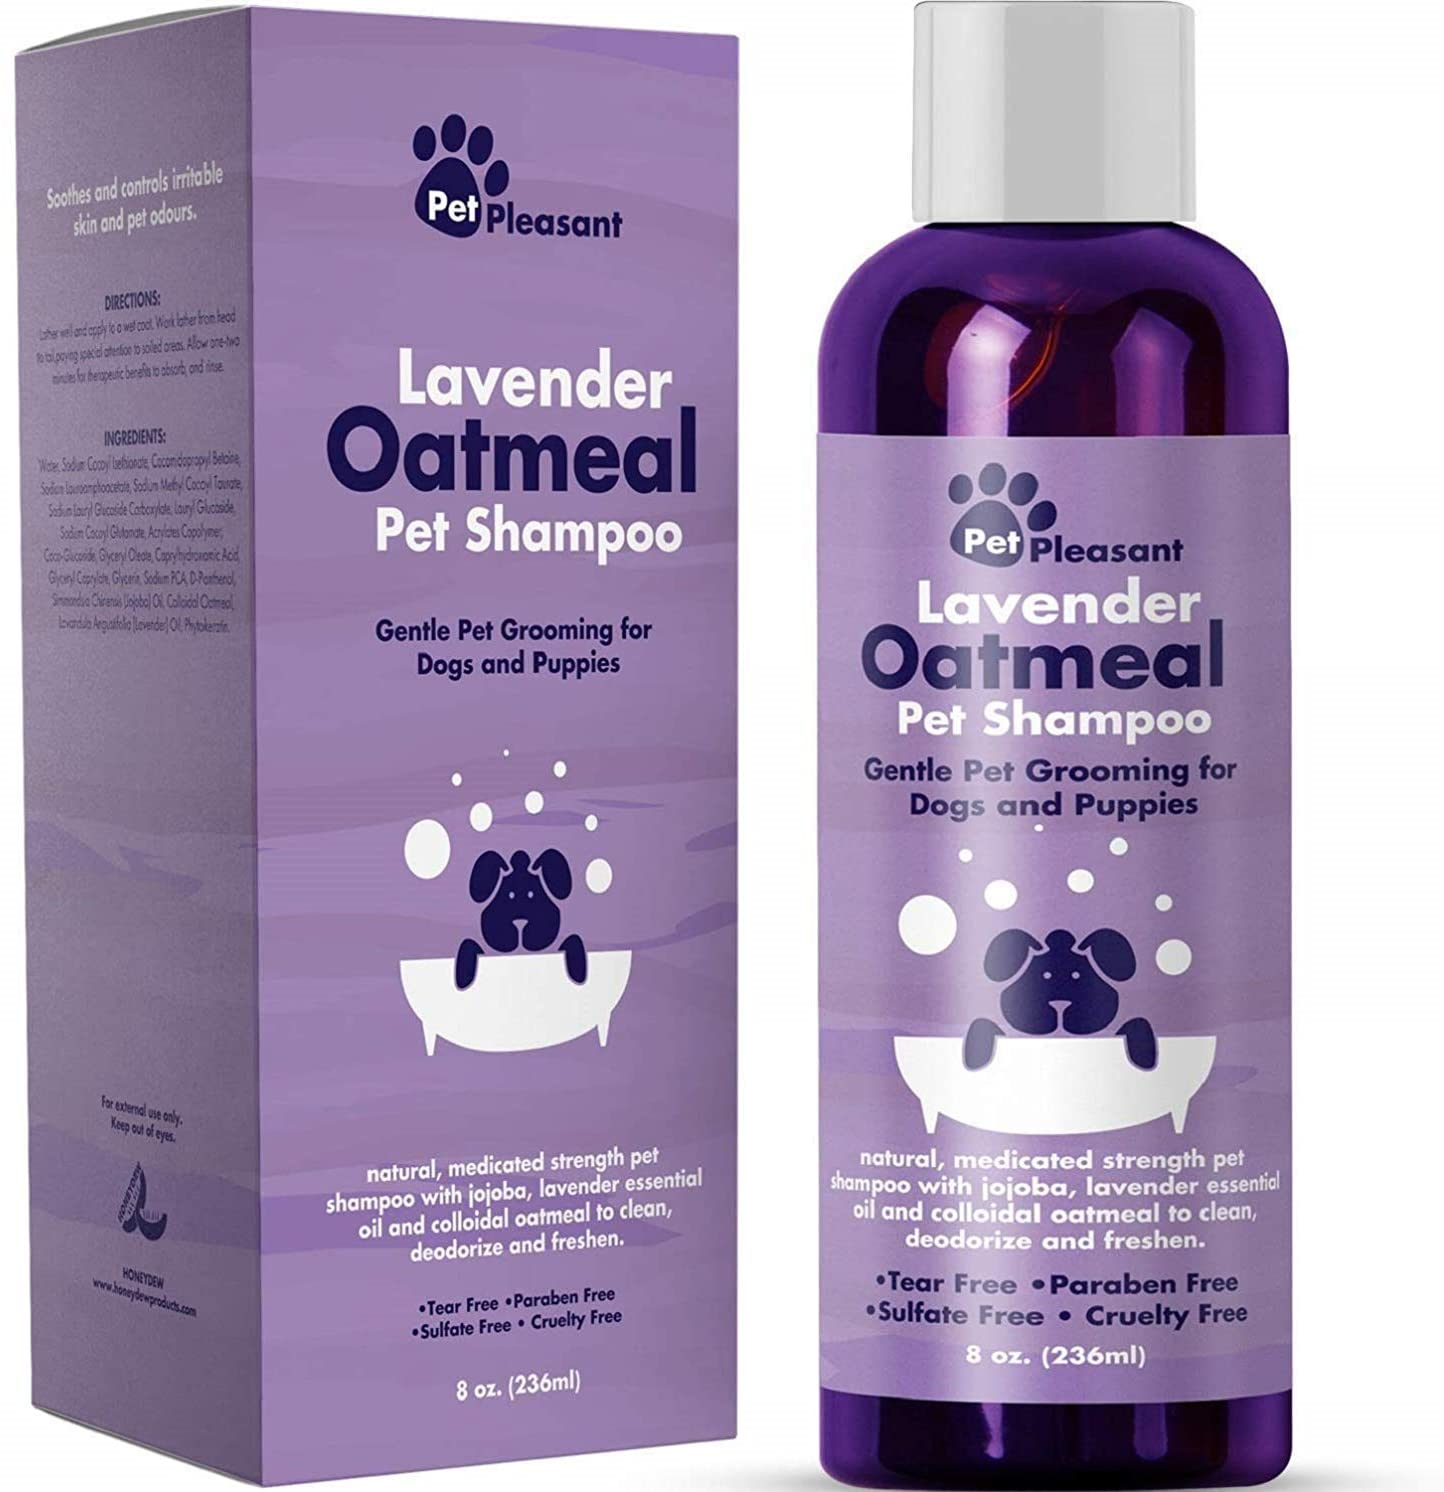 Cleansing Dog Shampoo for Smelly Dogs - Refreshing Colloidal Oatmeal Dog Shampoo for Dry Skin.